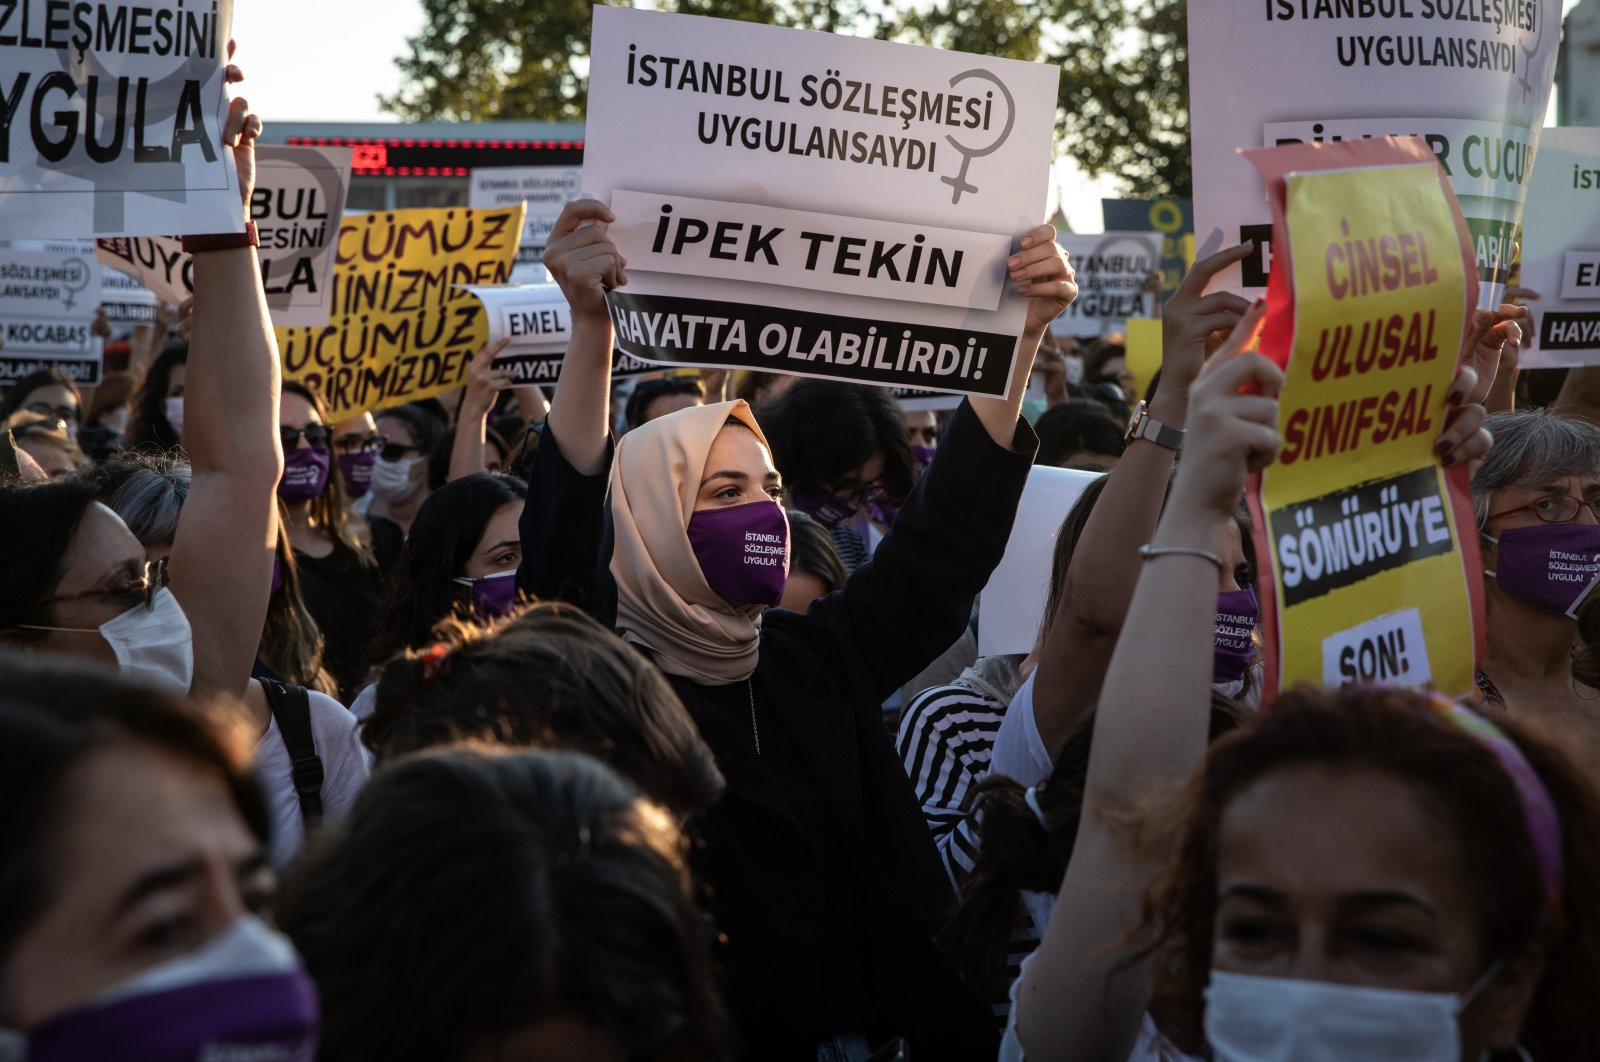 """A woman holds a sign that reads """"İpek Tekin could have been alive if Istanbul Convention was implemented"""" during a women's rights protest in Istanbul, Turkey, Aug. 5, 2020. (Getty Images)"""